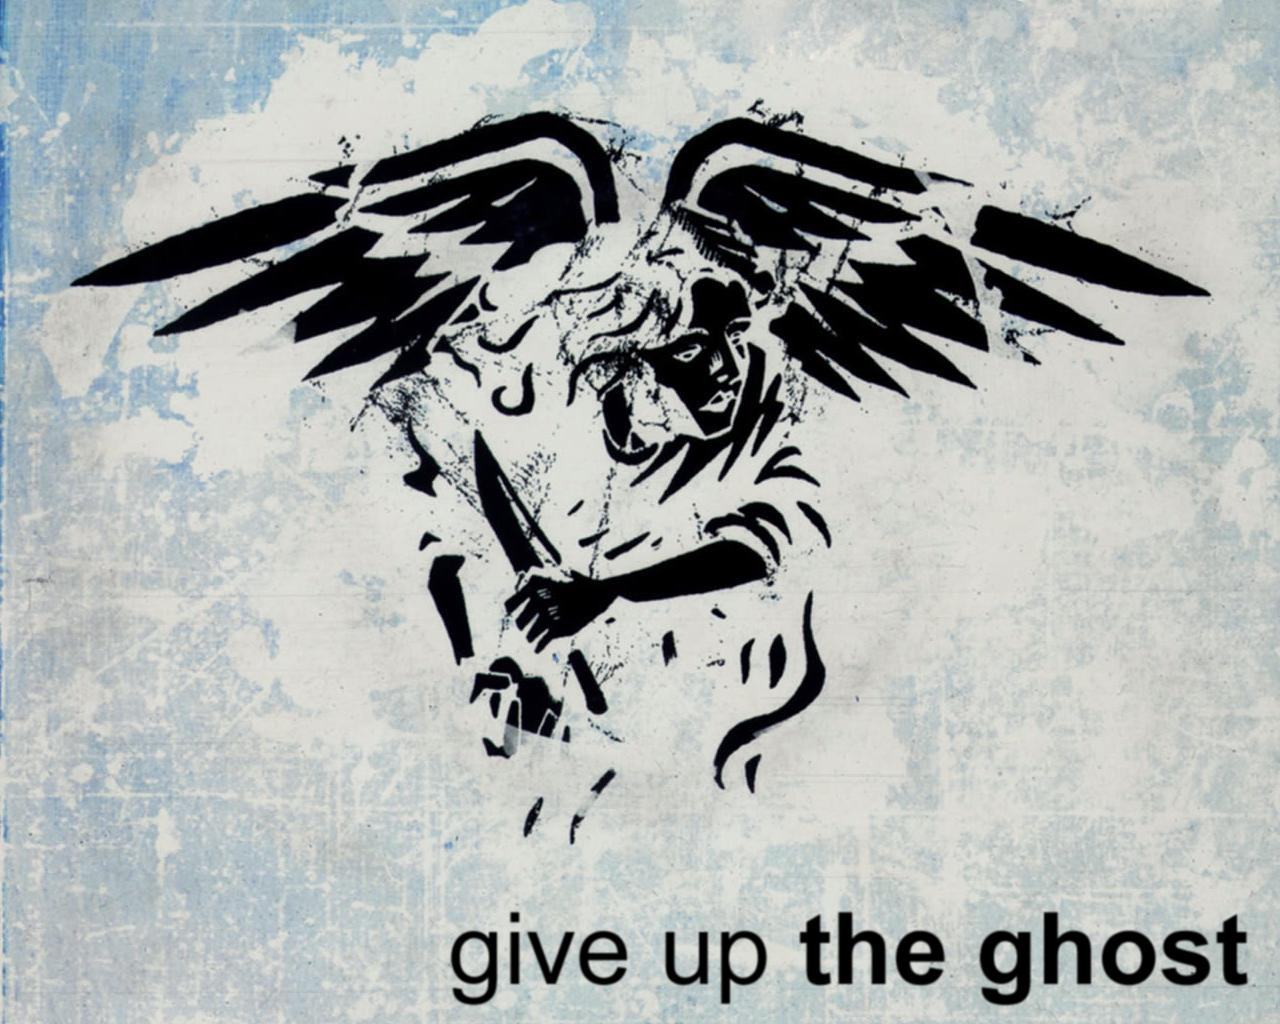 give_up_the_ghost_by_Frequenc.jpg